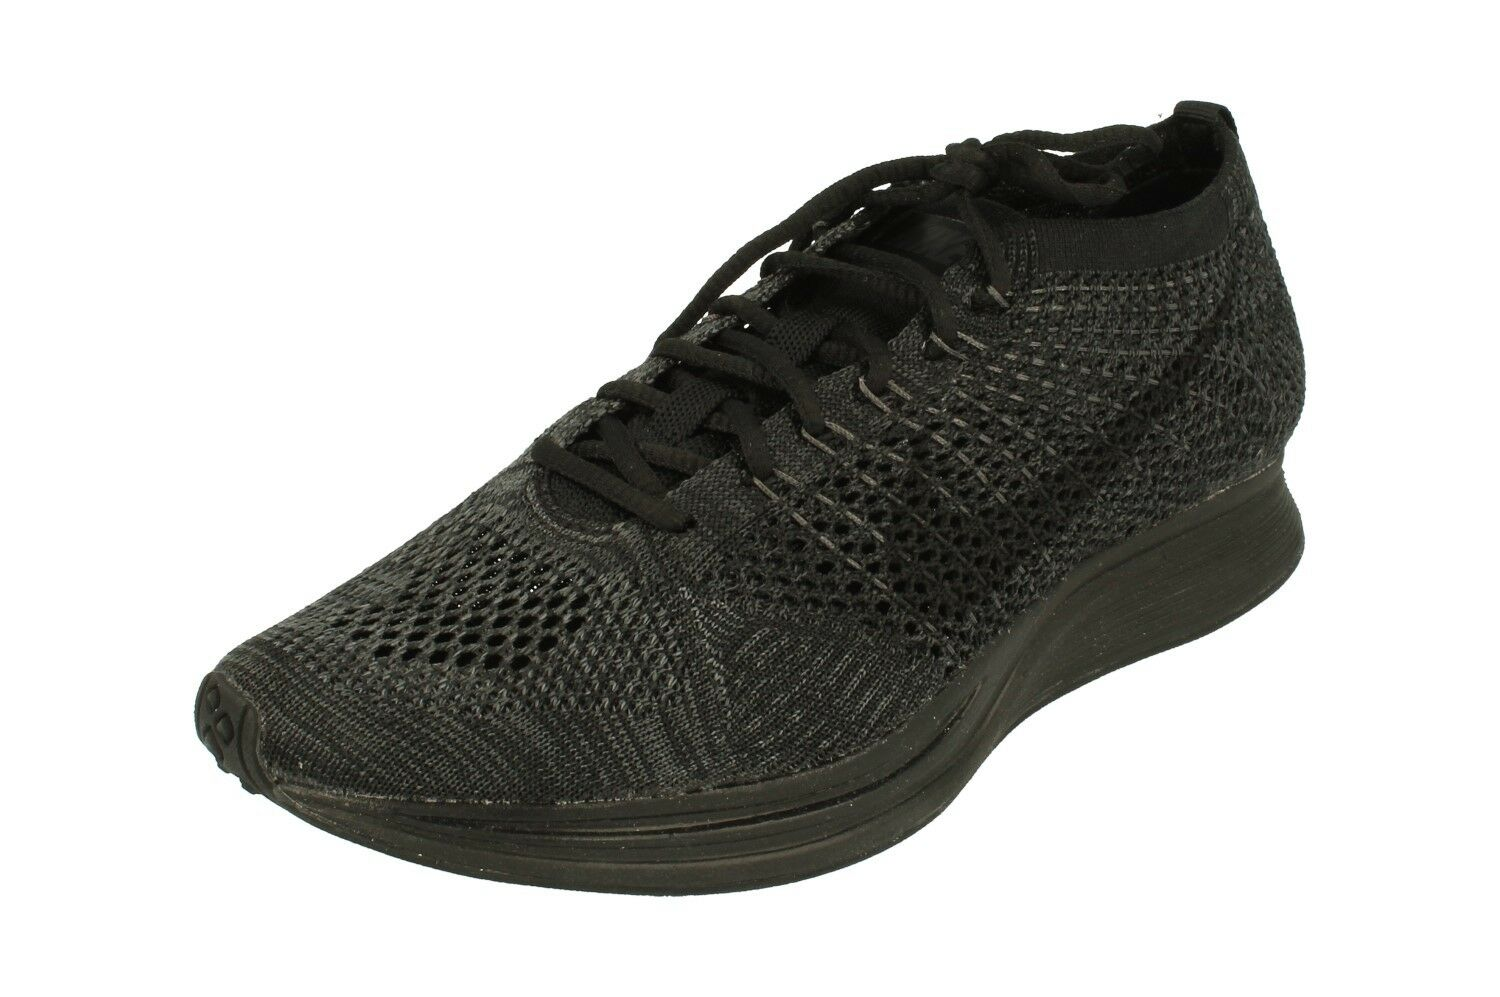 Nike Flyknit Racer Unisex Running Trainers 526628 009 Sneakers shoes shoes shoes 8d6e5c